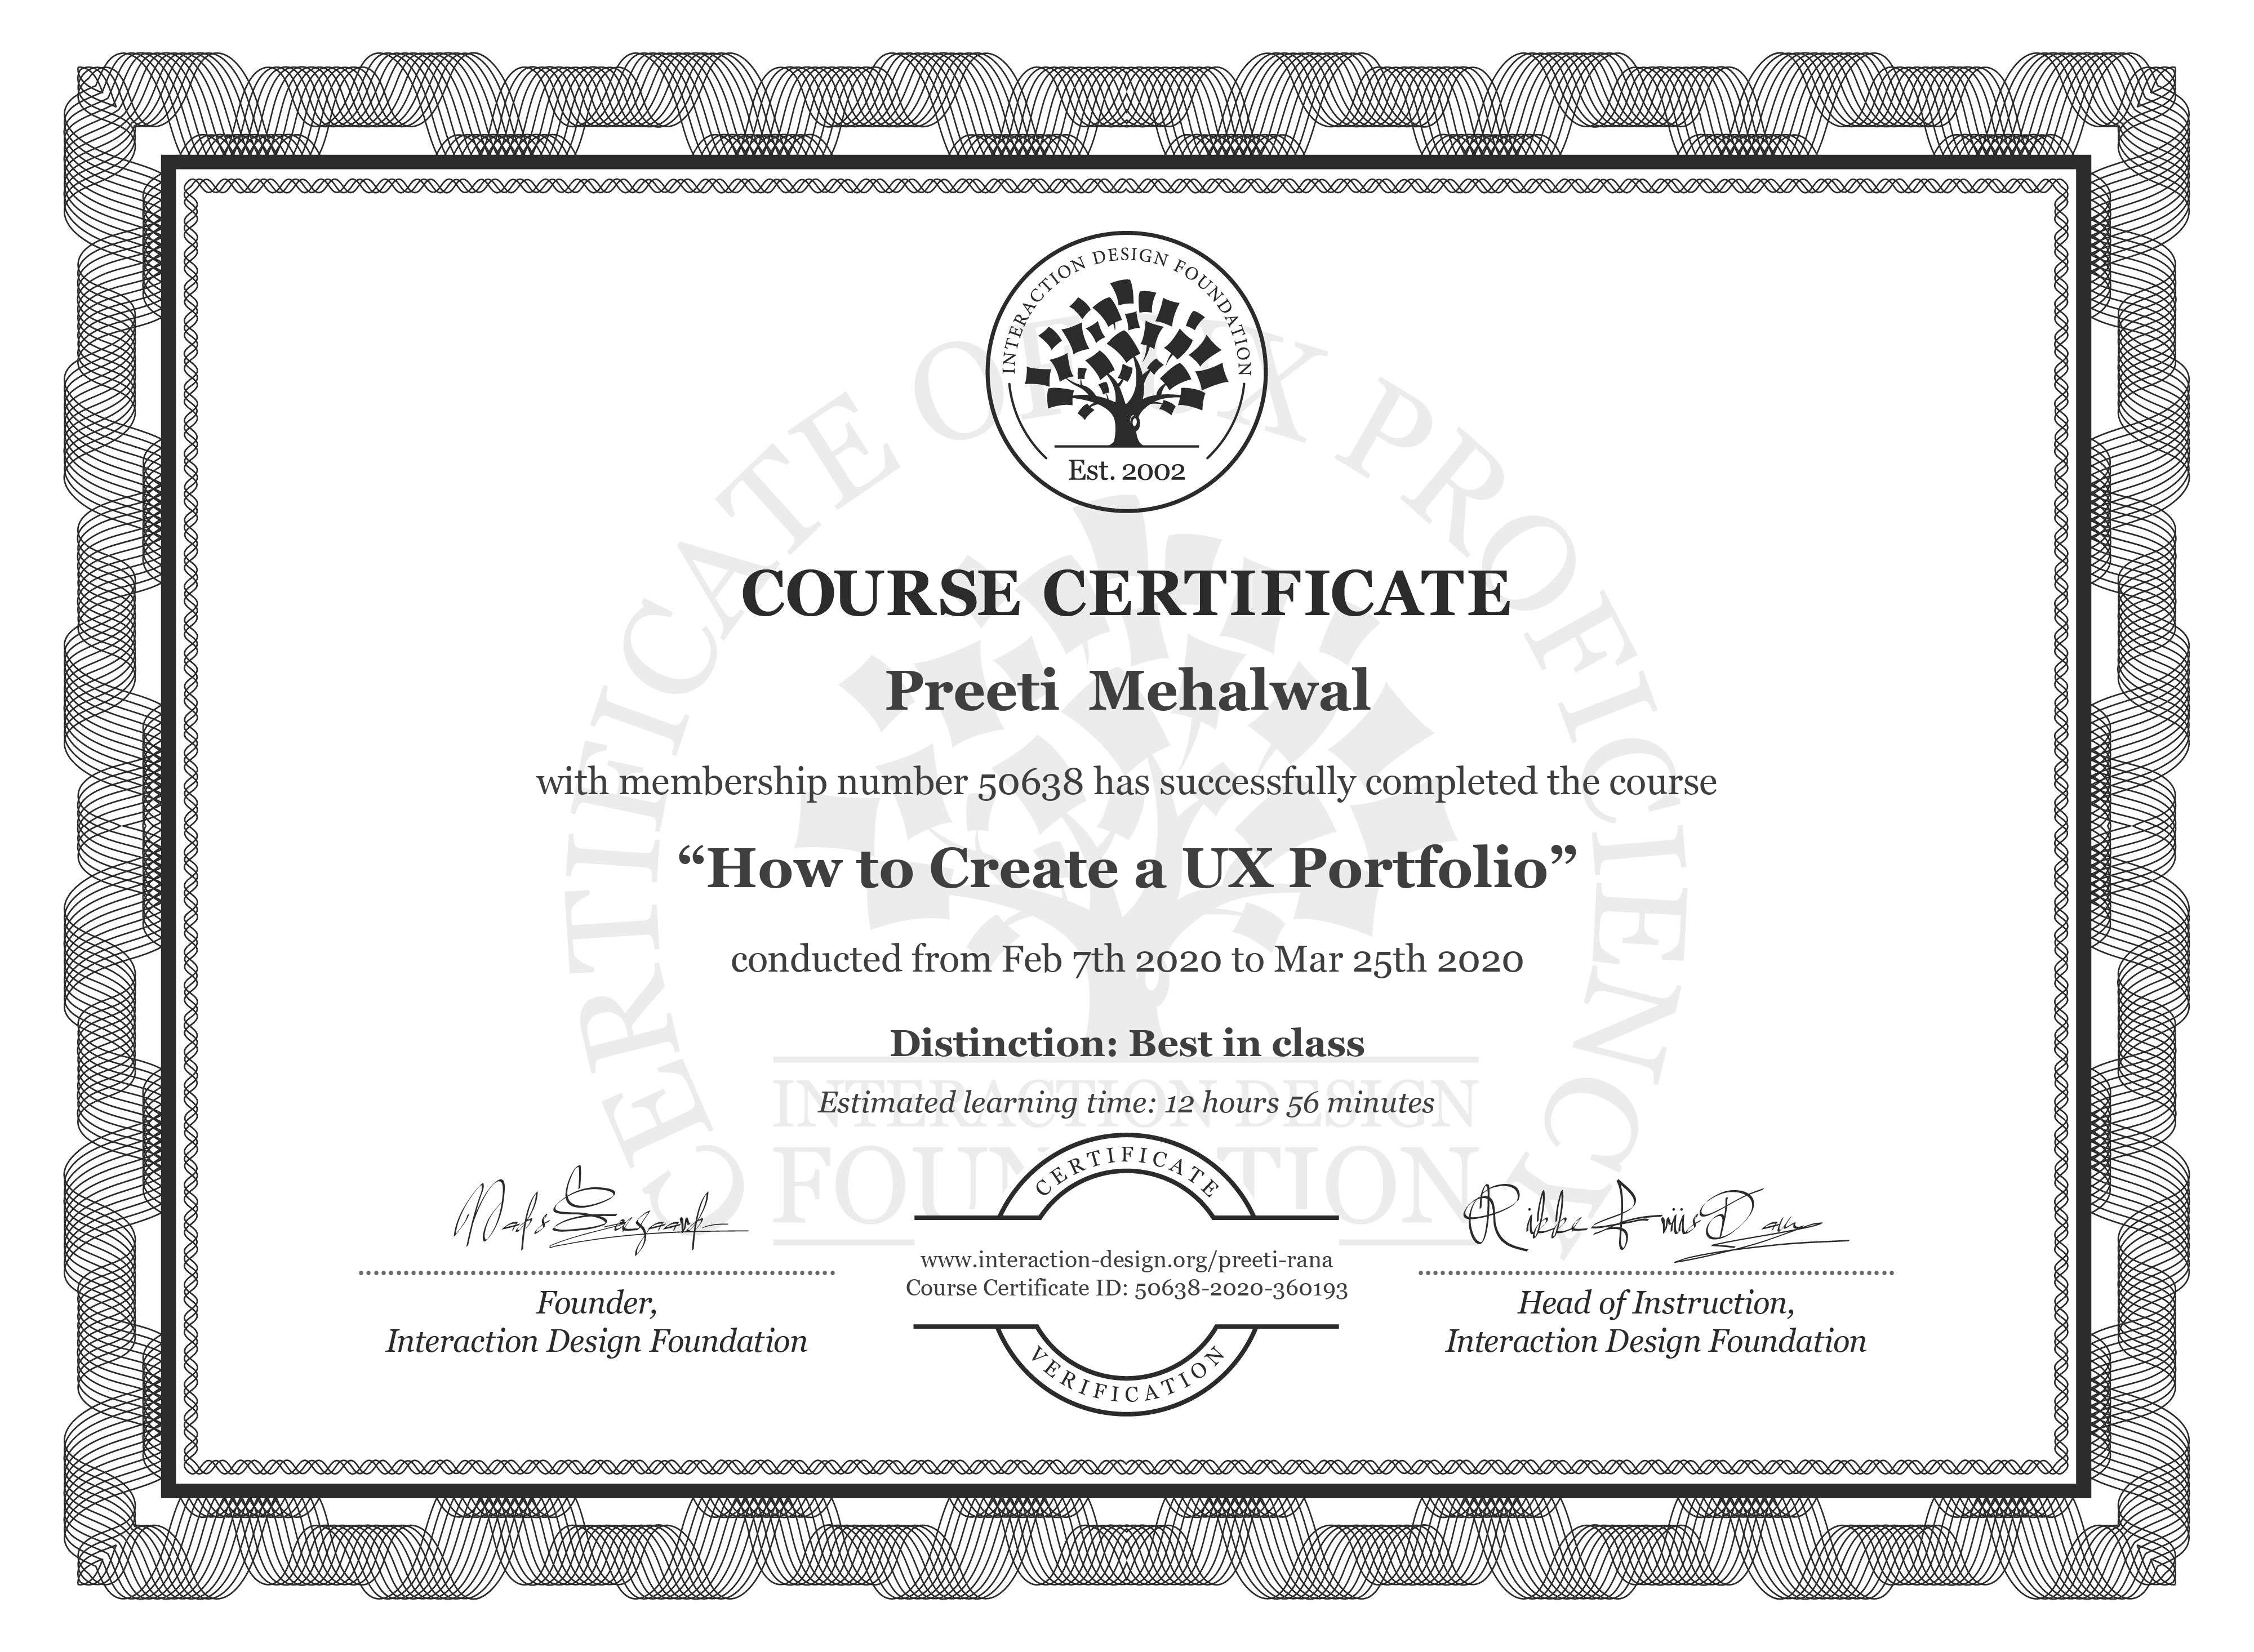 Preeti  Mehalwal's Course Certificate: How to Create a UX Portfolio